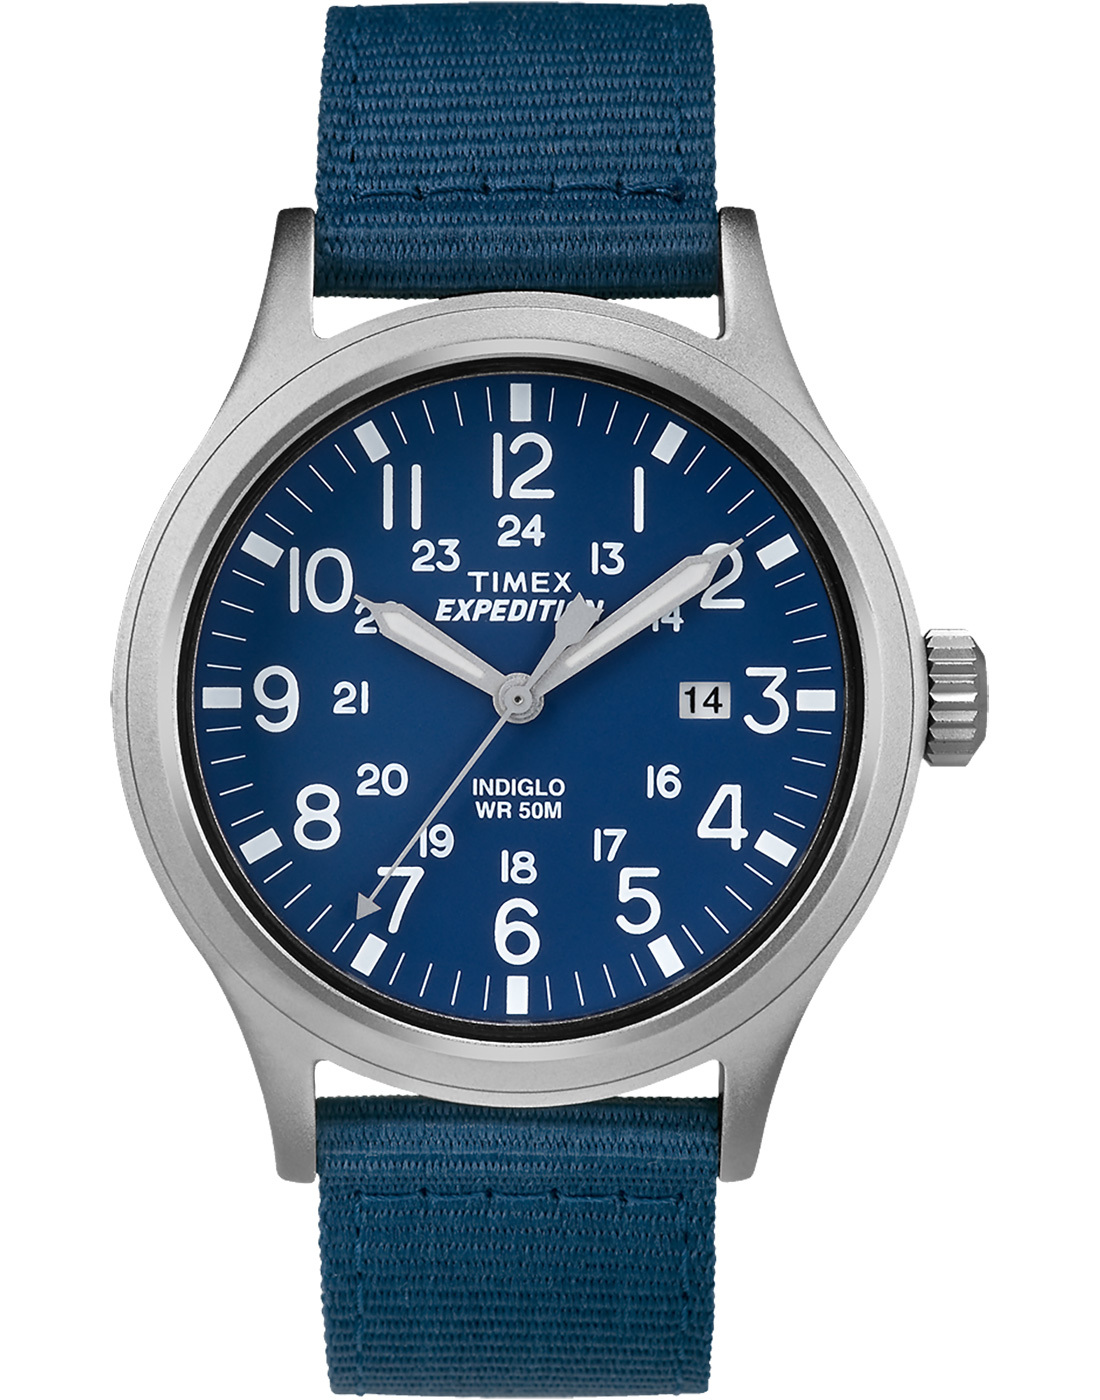 Expedition Scout TIMEX Retro Mod Watch